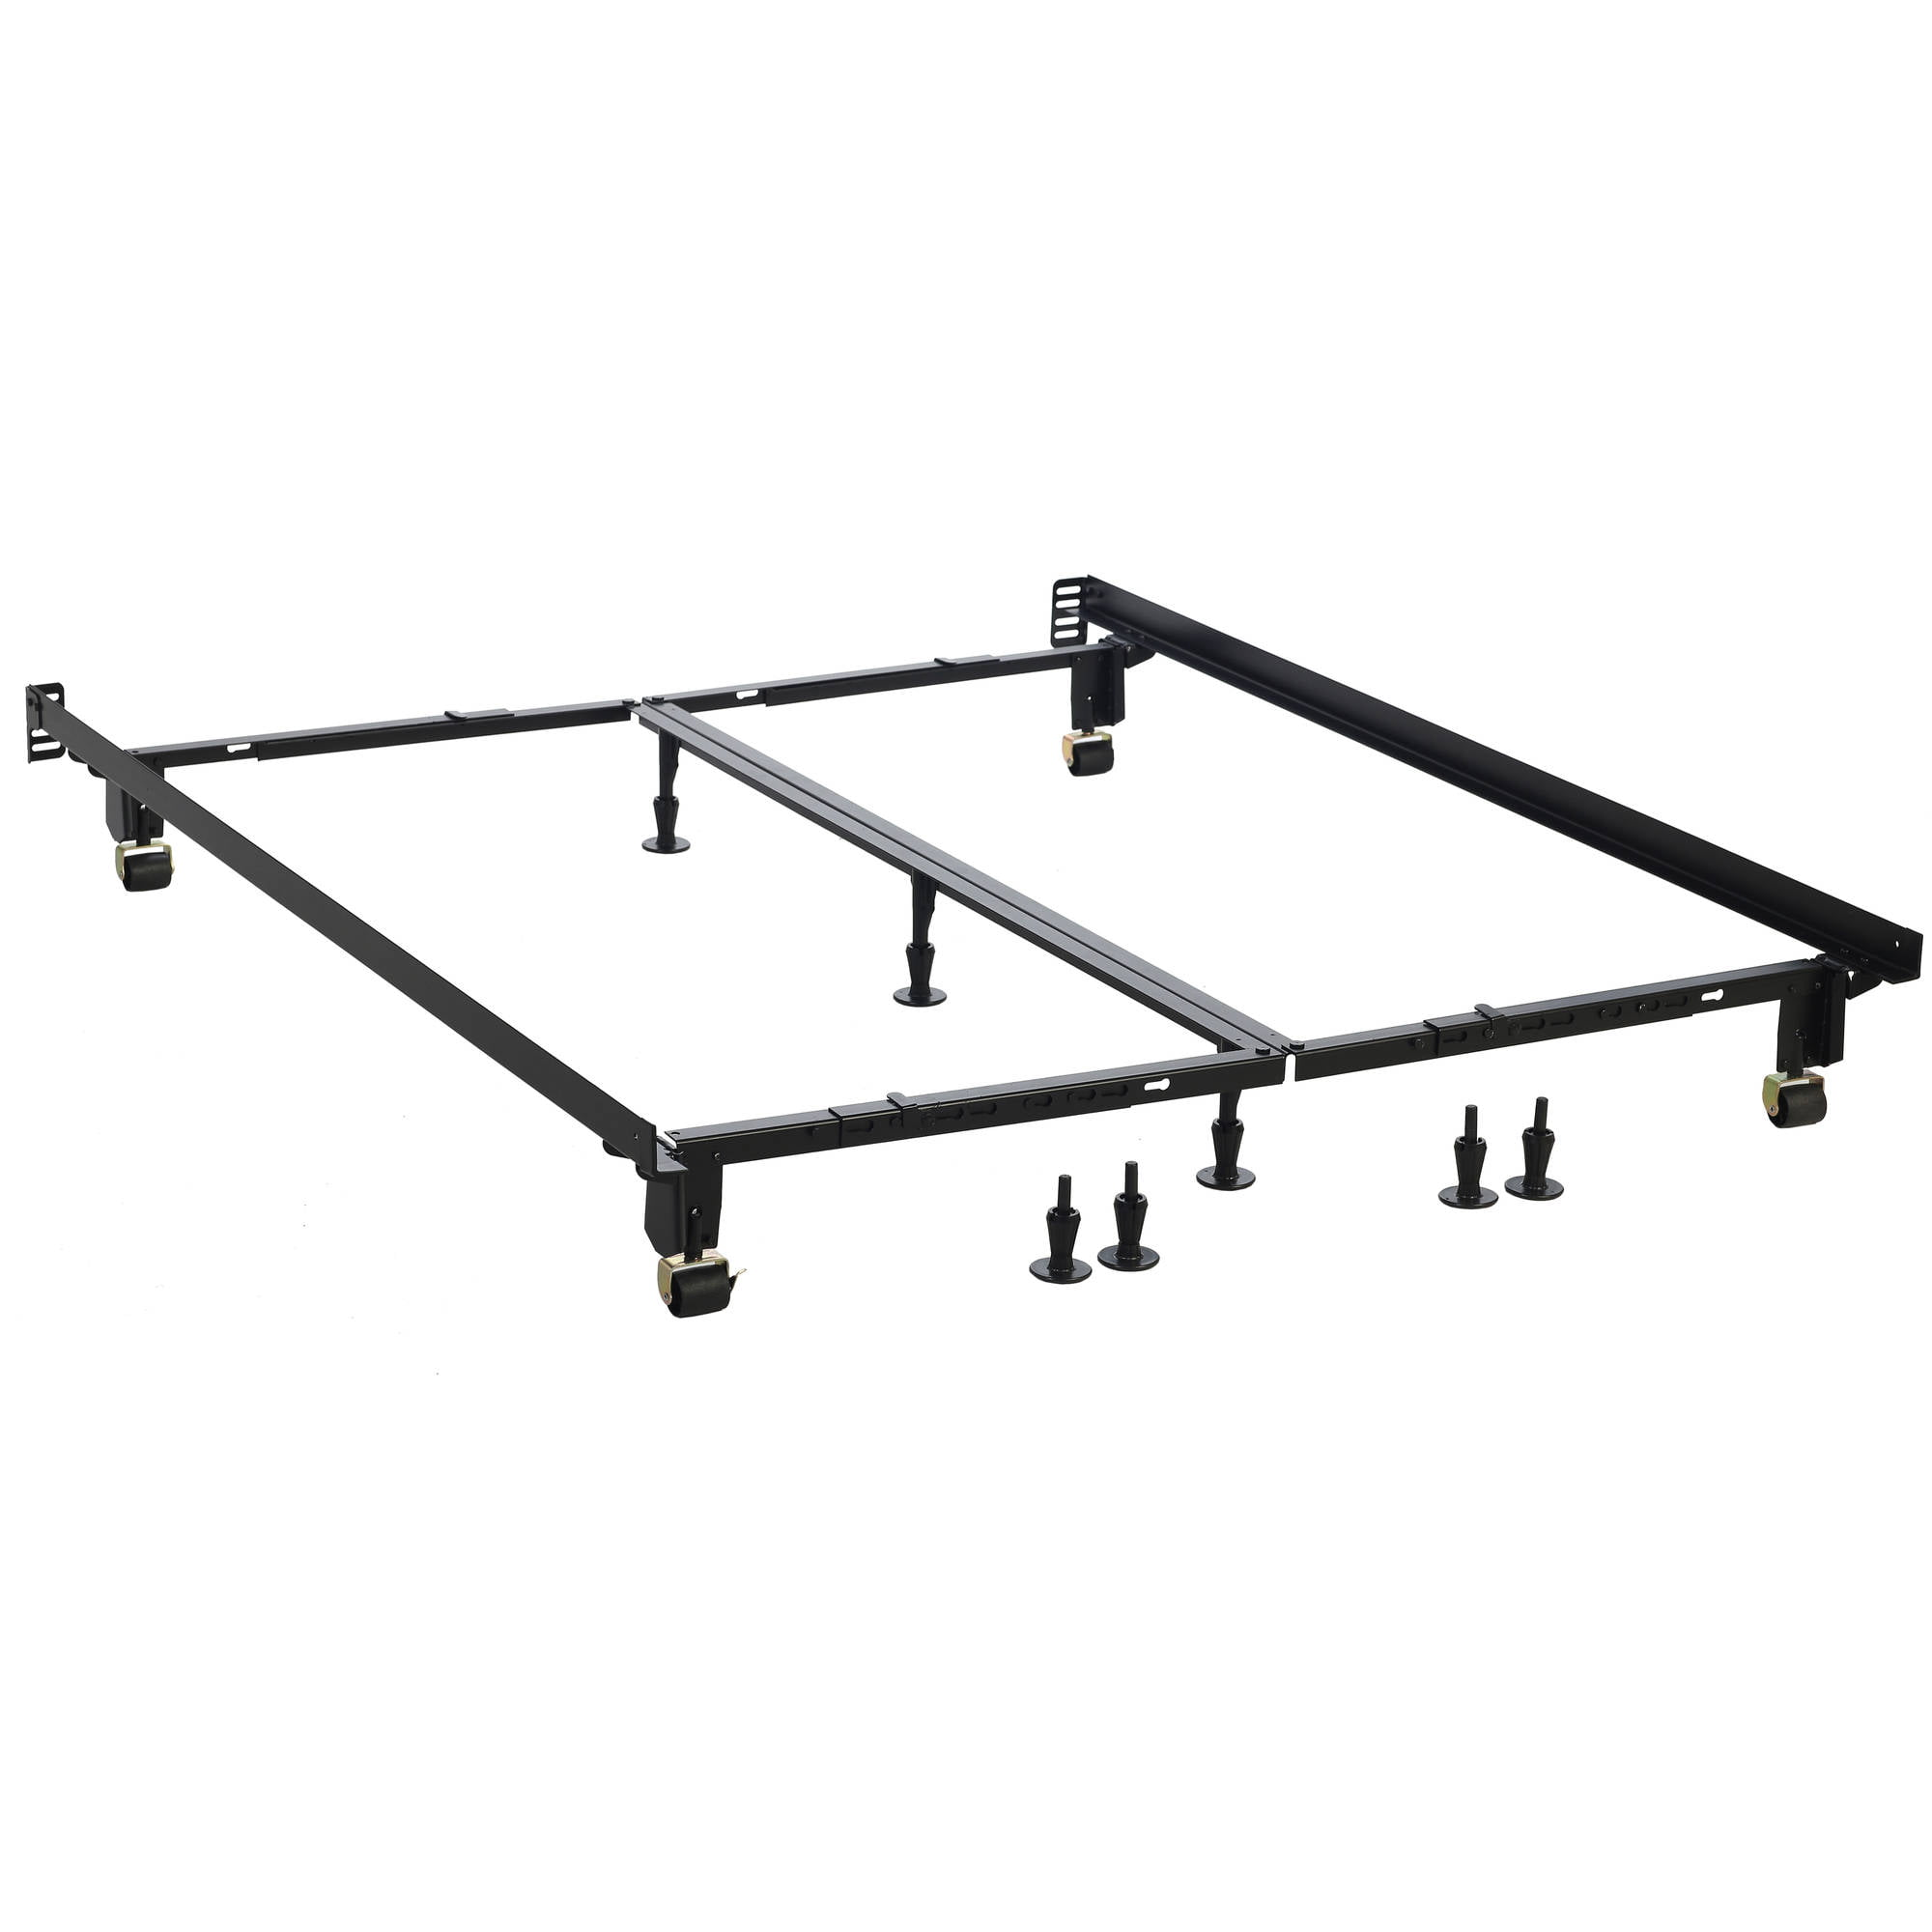 Beautyrest World Class Extra Heavy Duty Adjustable Bed Frame, All Sizes with No Tools Needed by Hollywood Bed & Spring